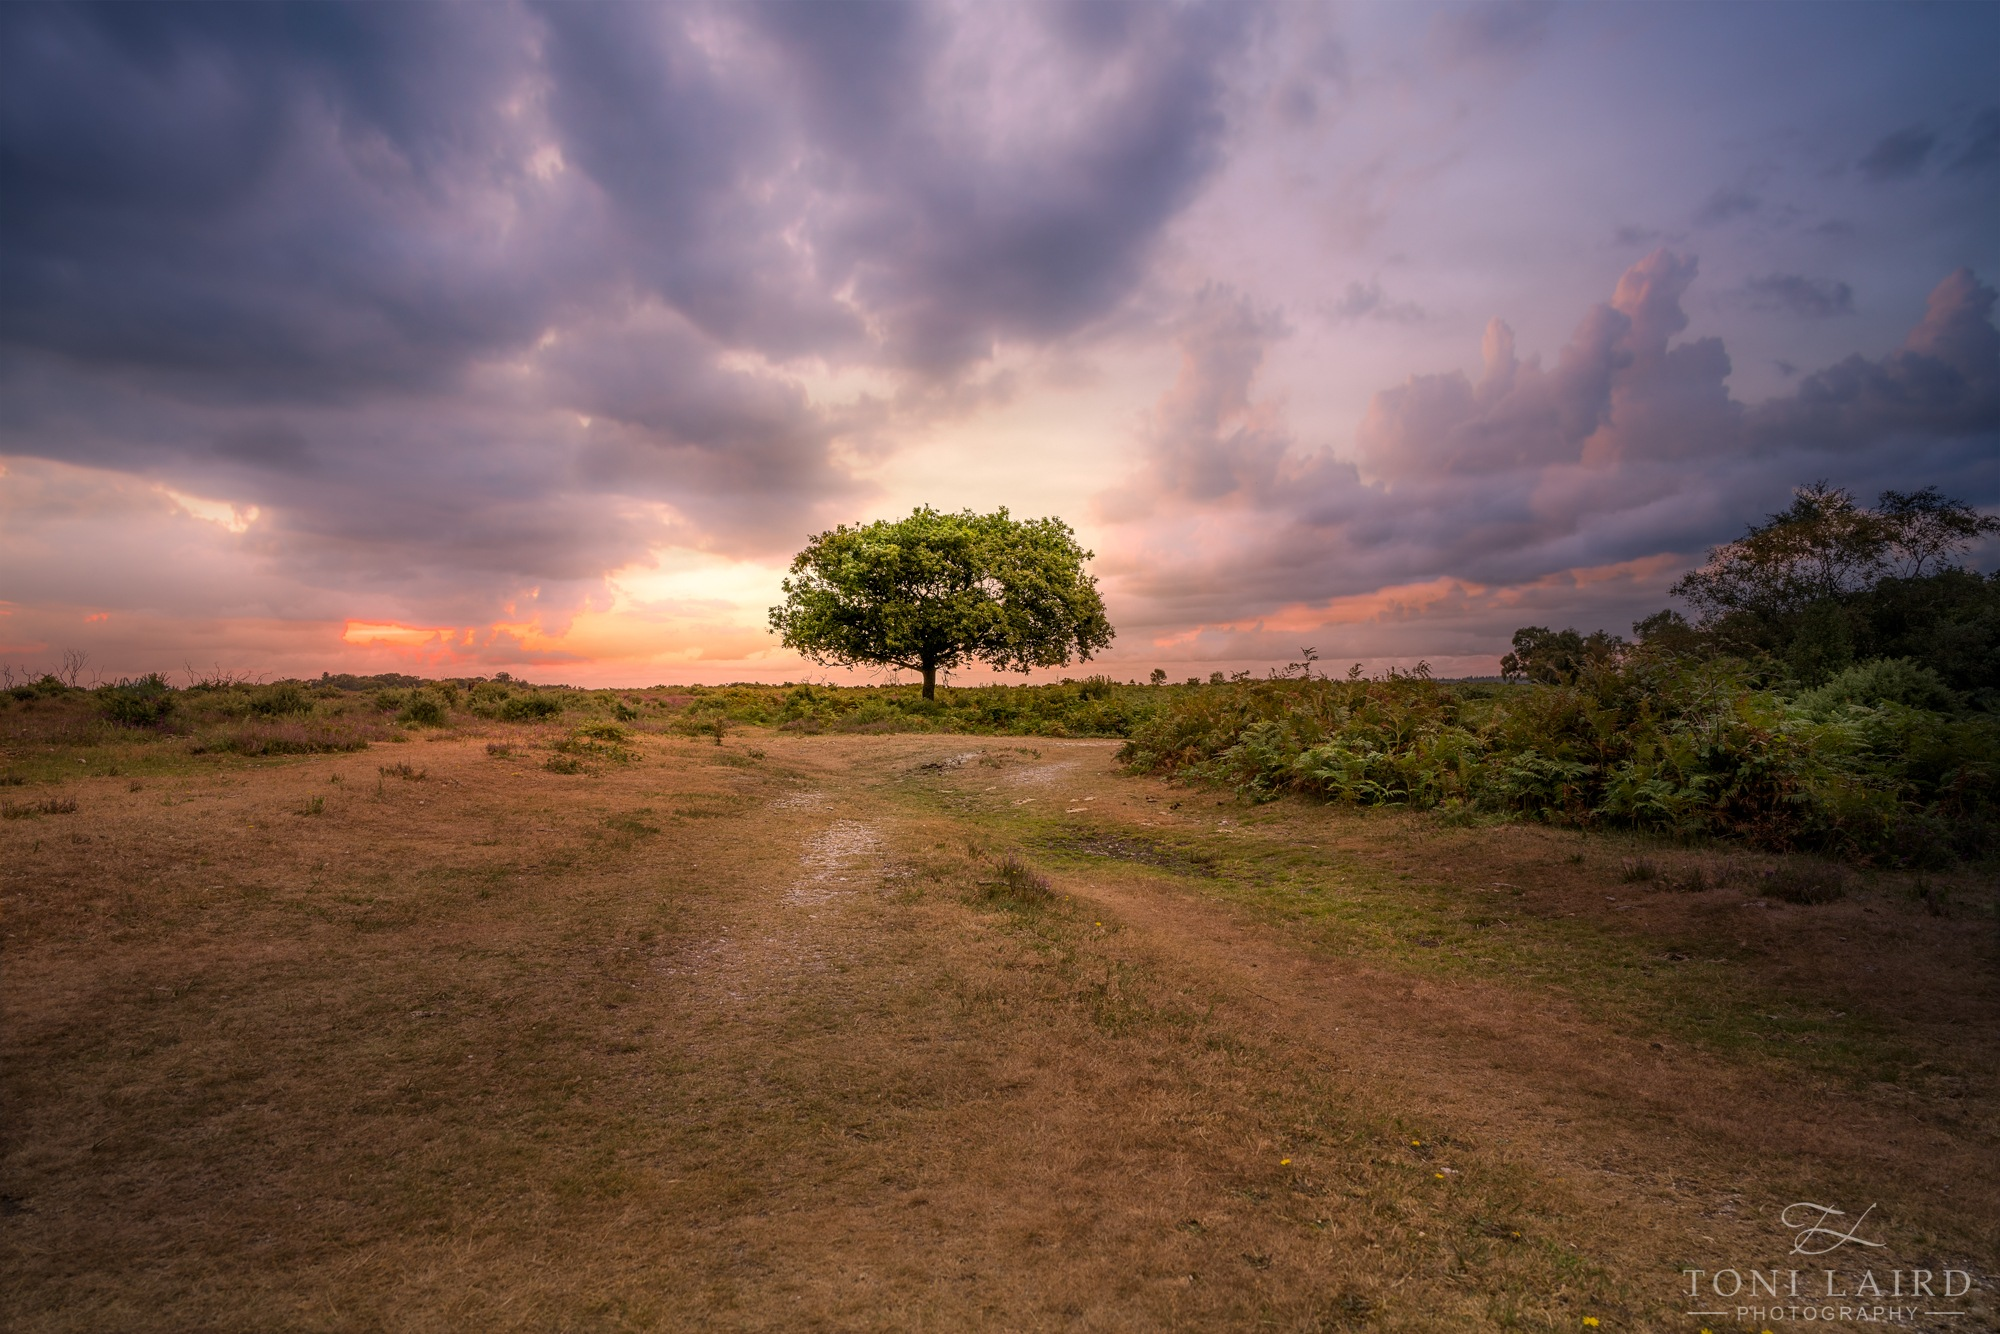 The Lone Tree by Toni Laird